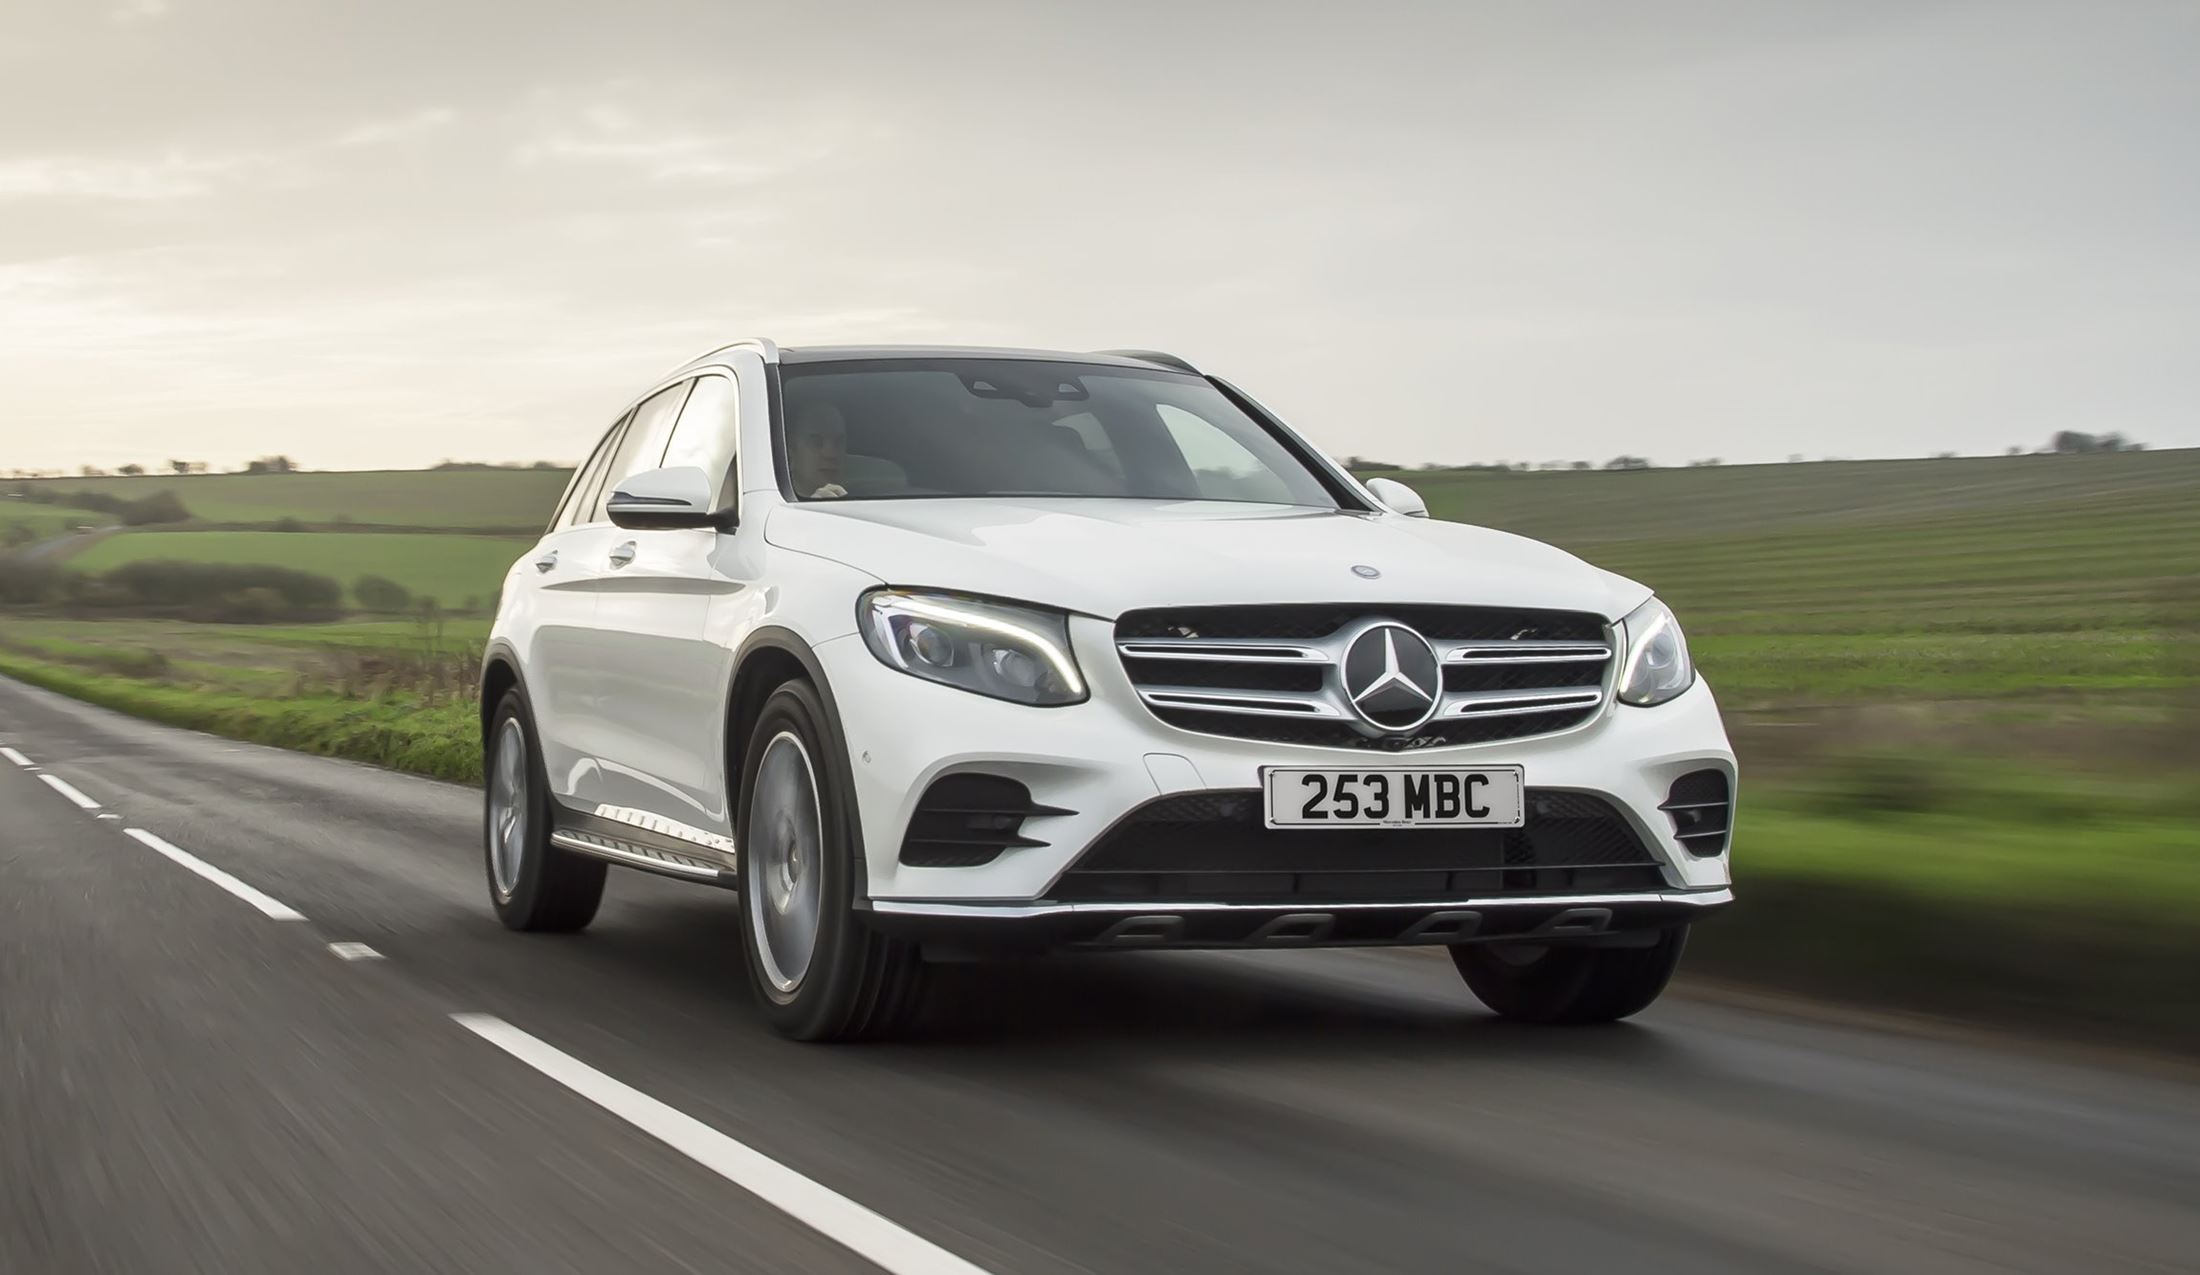 2016 mercedes benz glc class uk 21 for 2016 mercedes benz glc